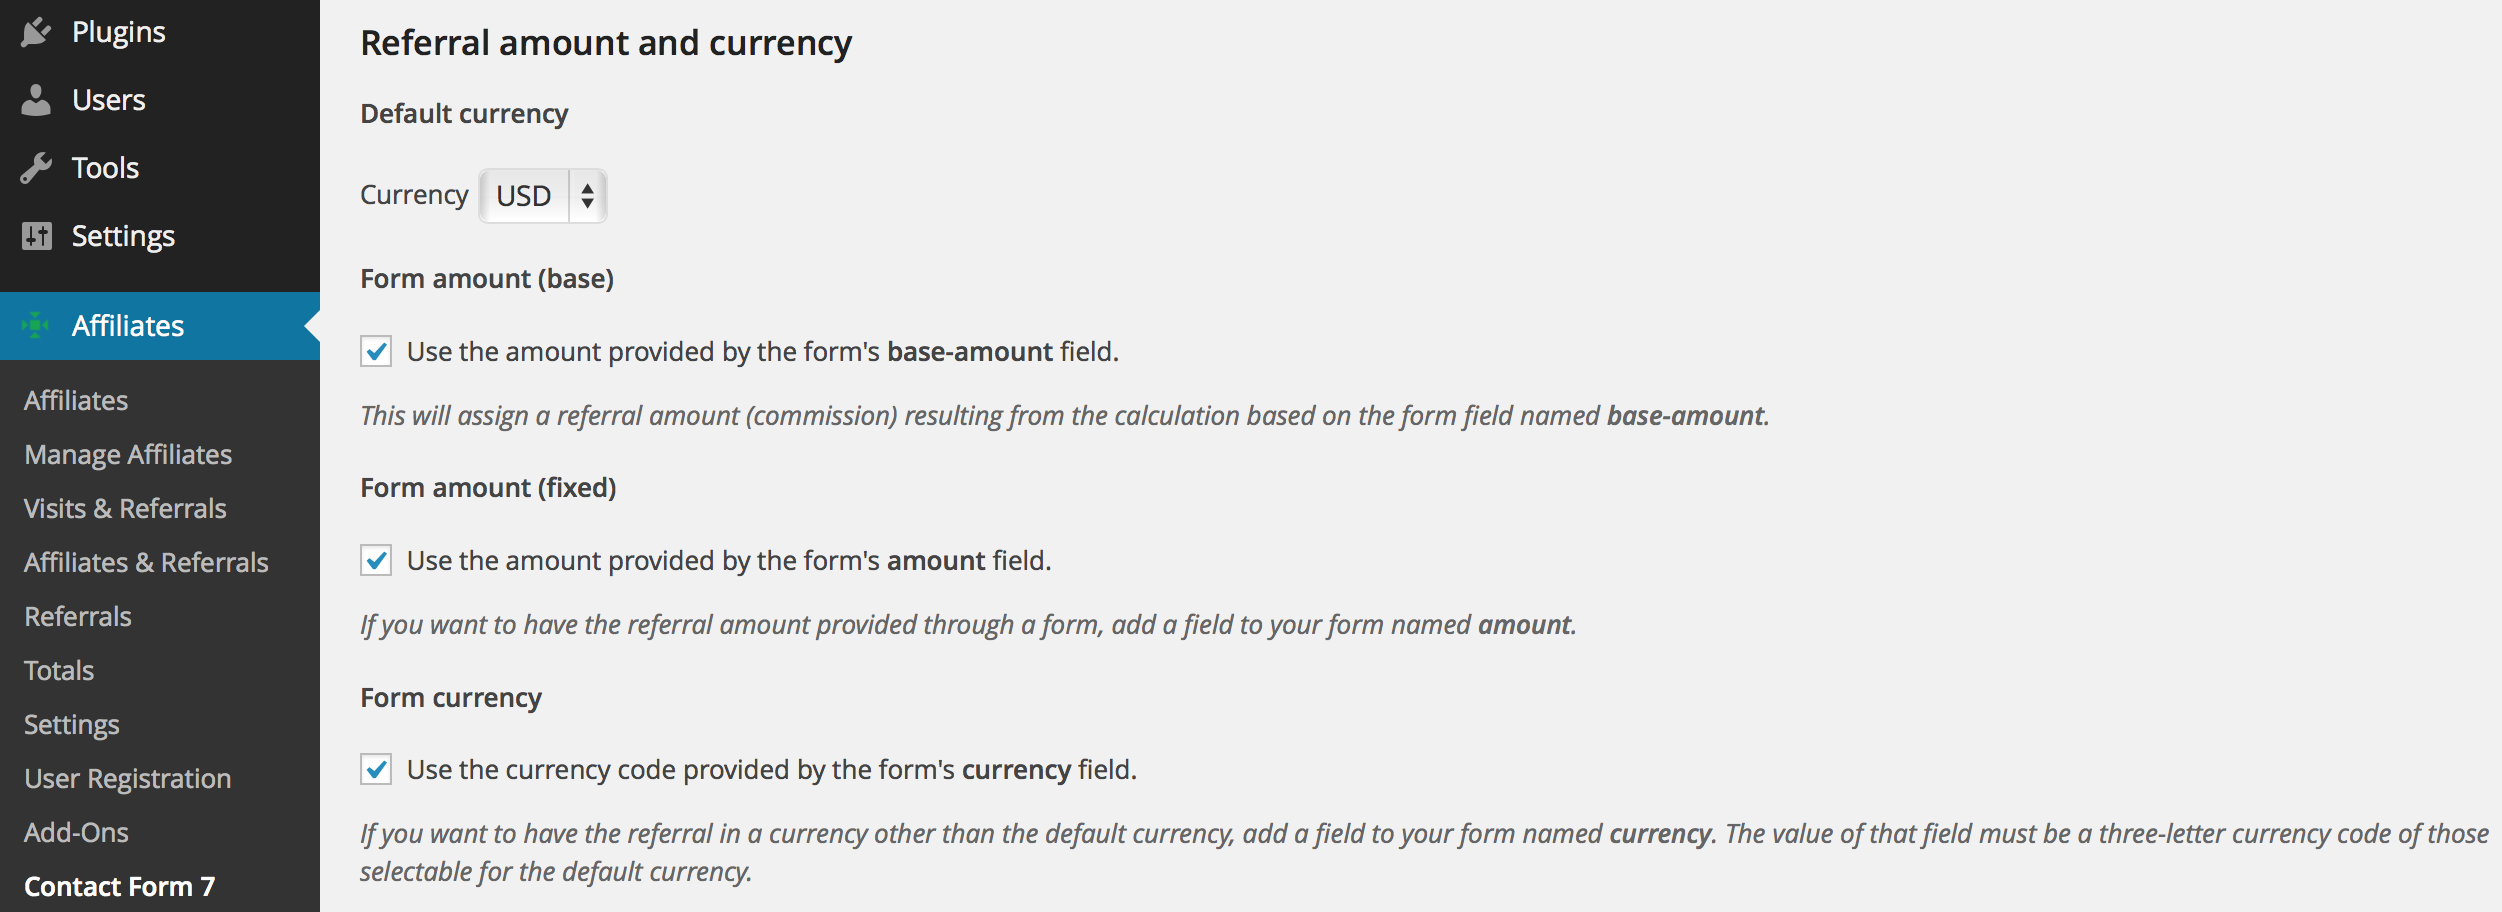 referral amount and currency